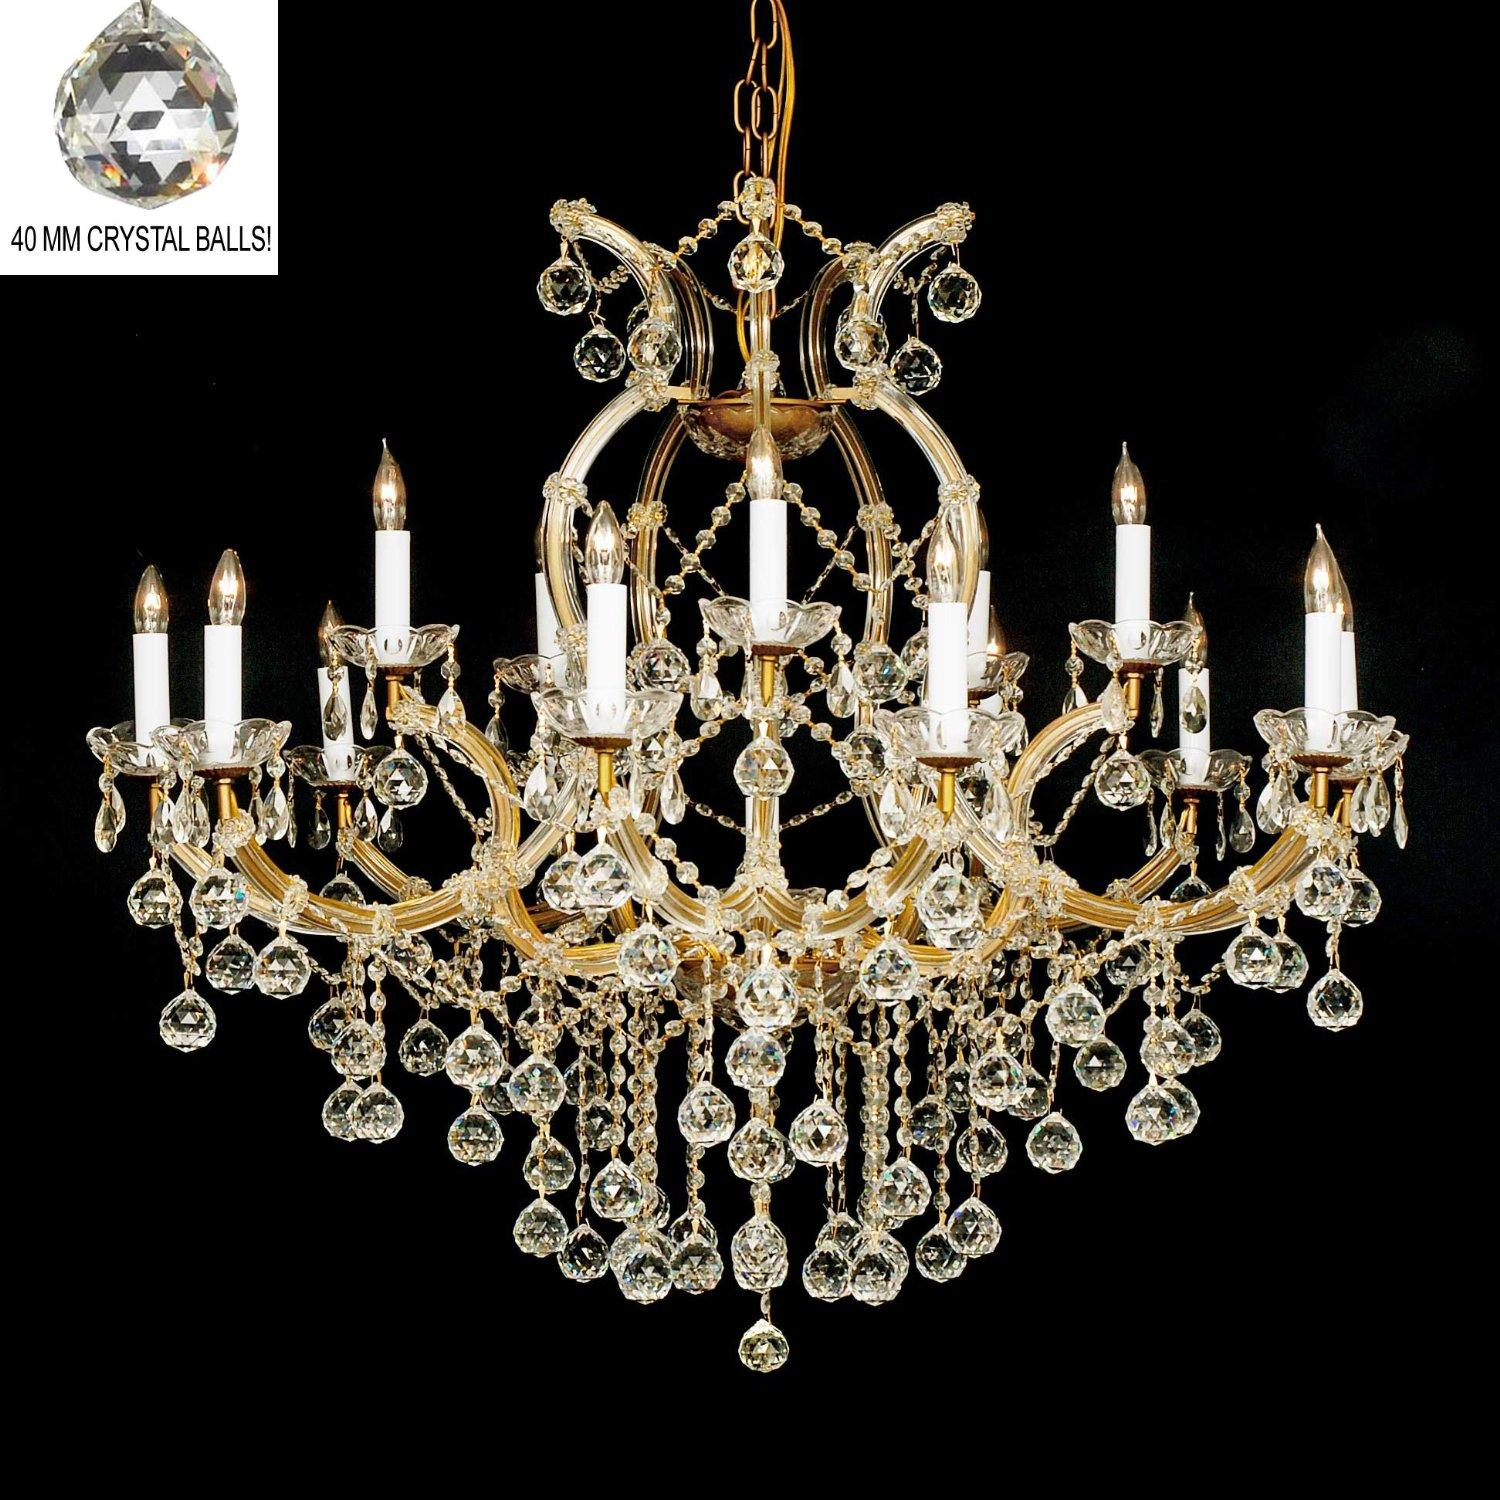 New Crystal Chandelier Lighting H38x W37 With Faceted Crystal Balls